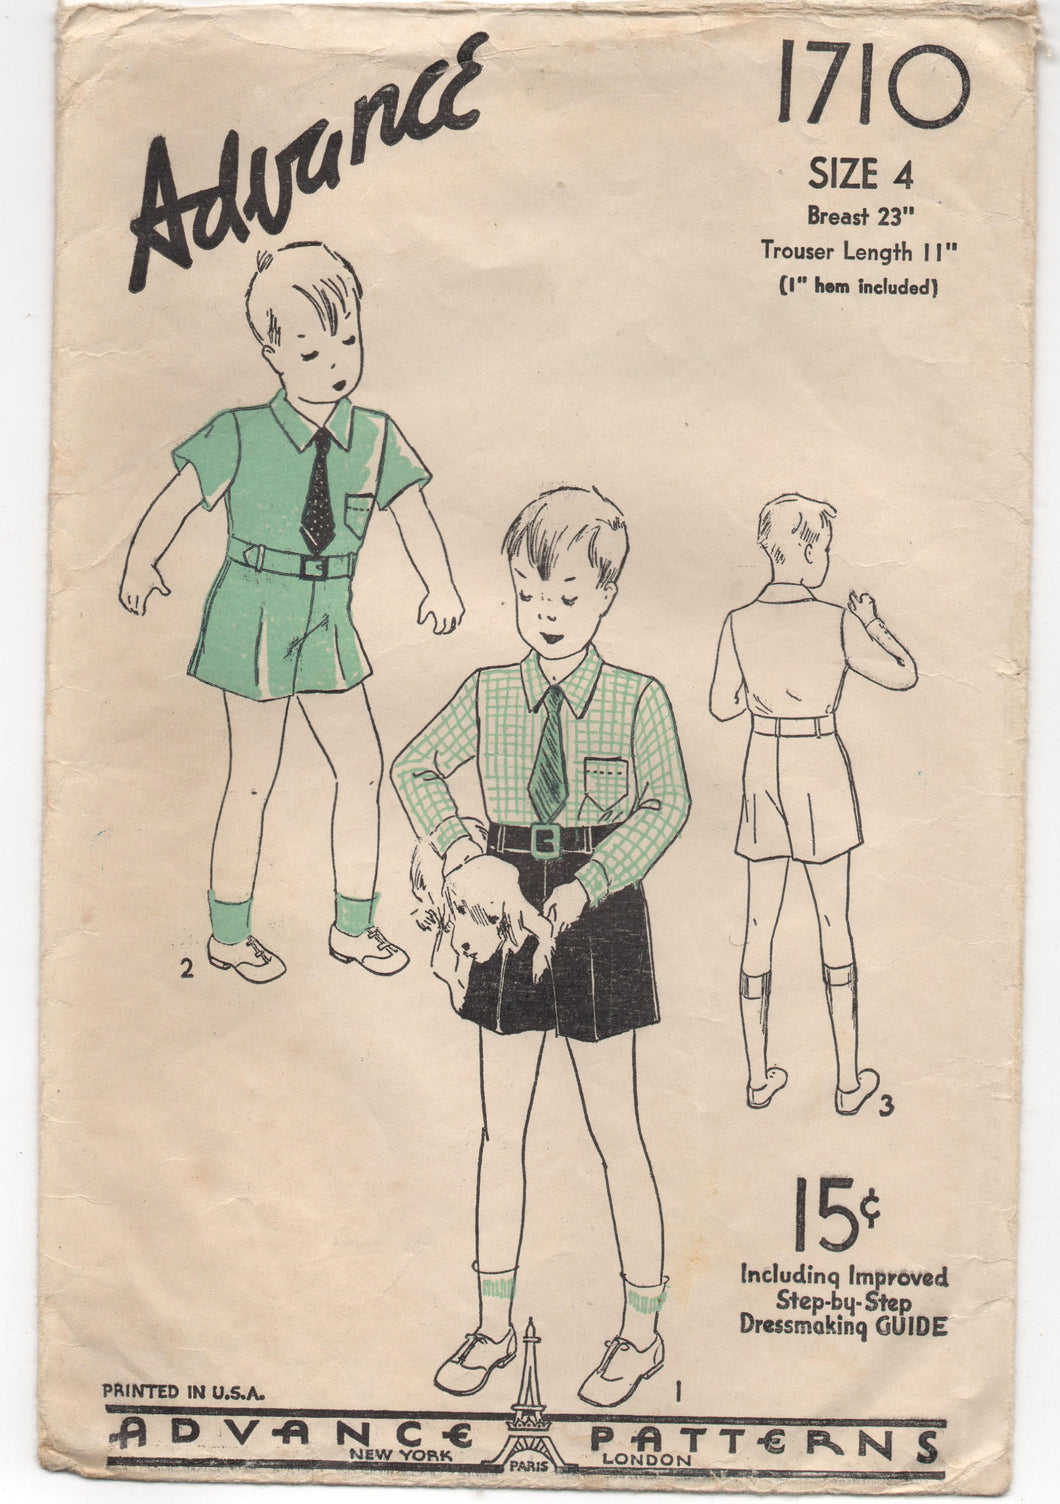 1930's Advance Button up Shirt and Shorts Pattern - Breast 23